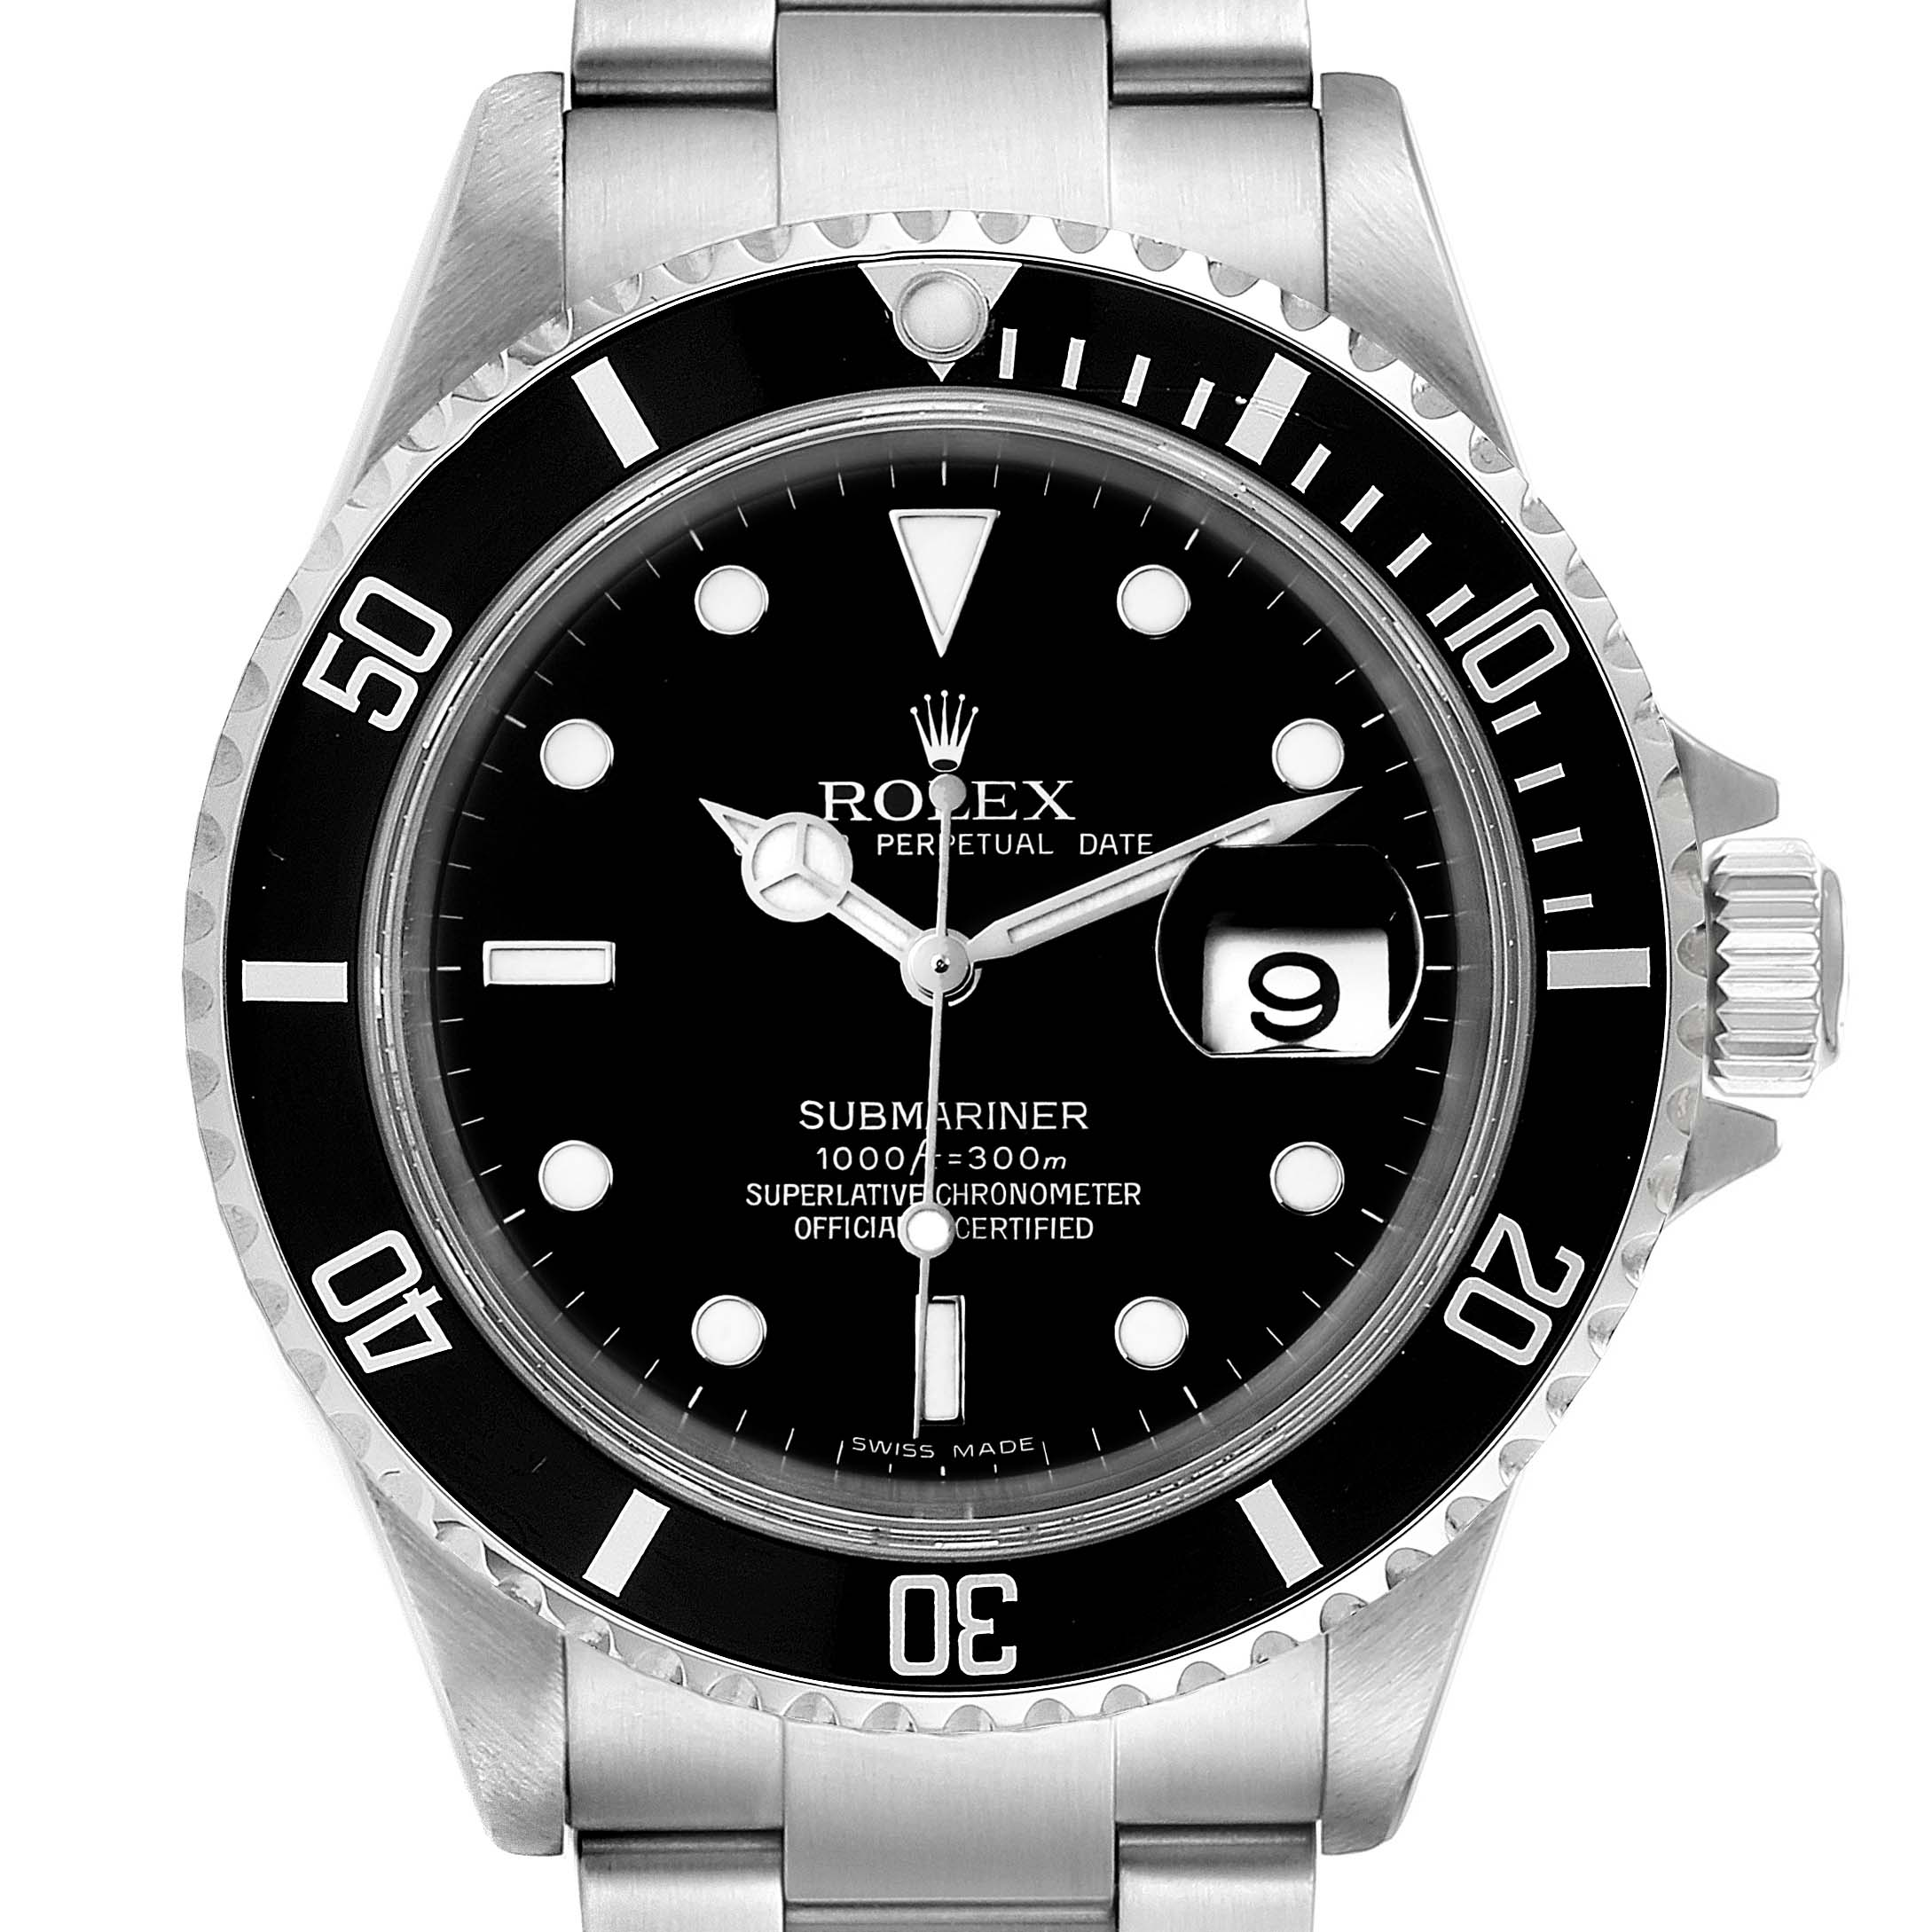 Rolex Submariner Black Dial Stainless Steel Mens Watch 16610 Box SwissWatchExpo